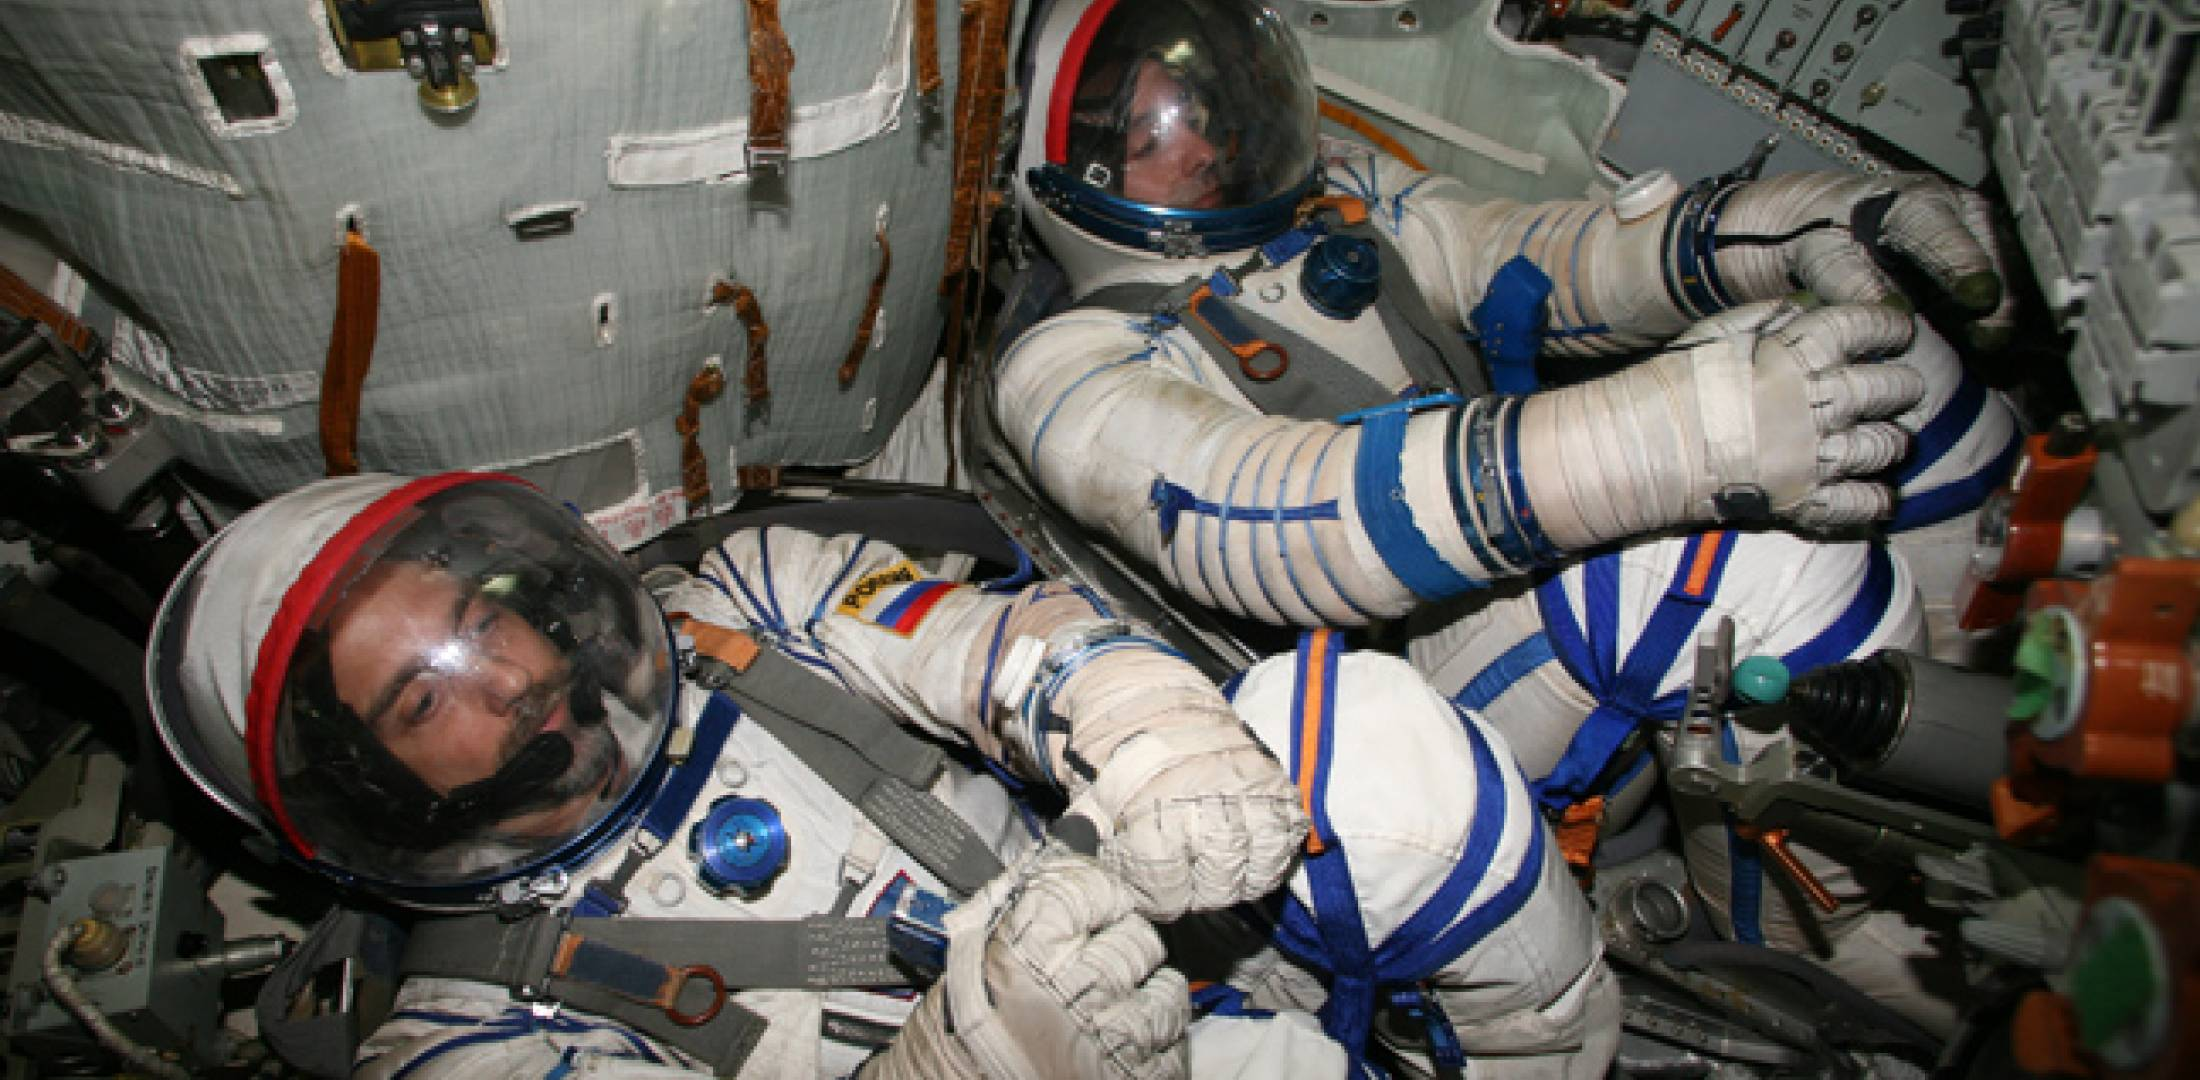 Garriott (l.) made it into space but not by the way he originally planned.